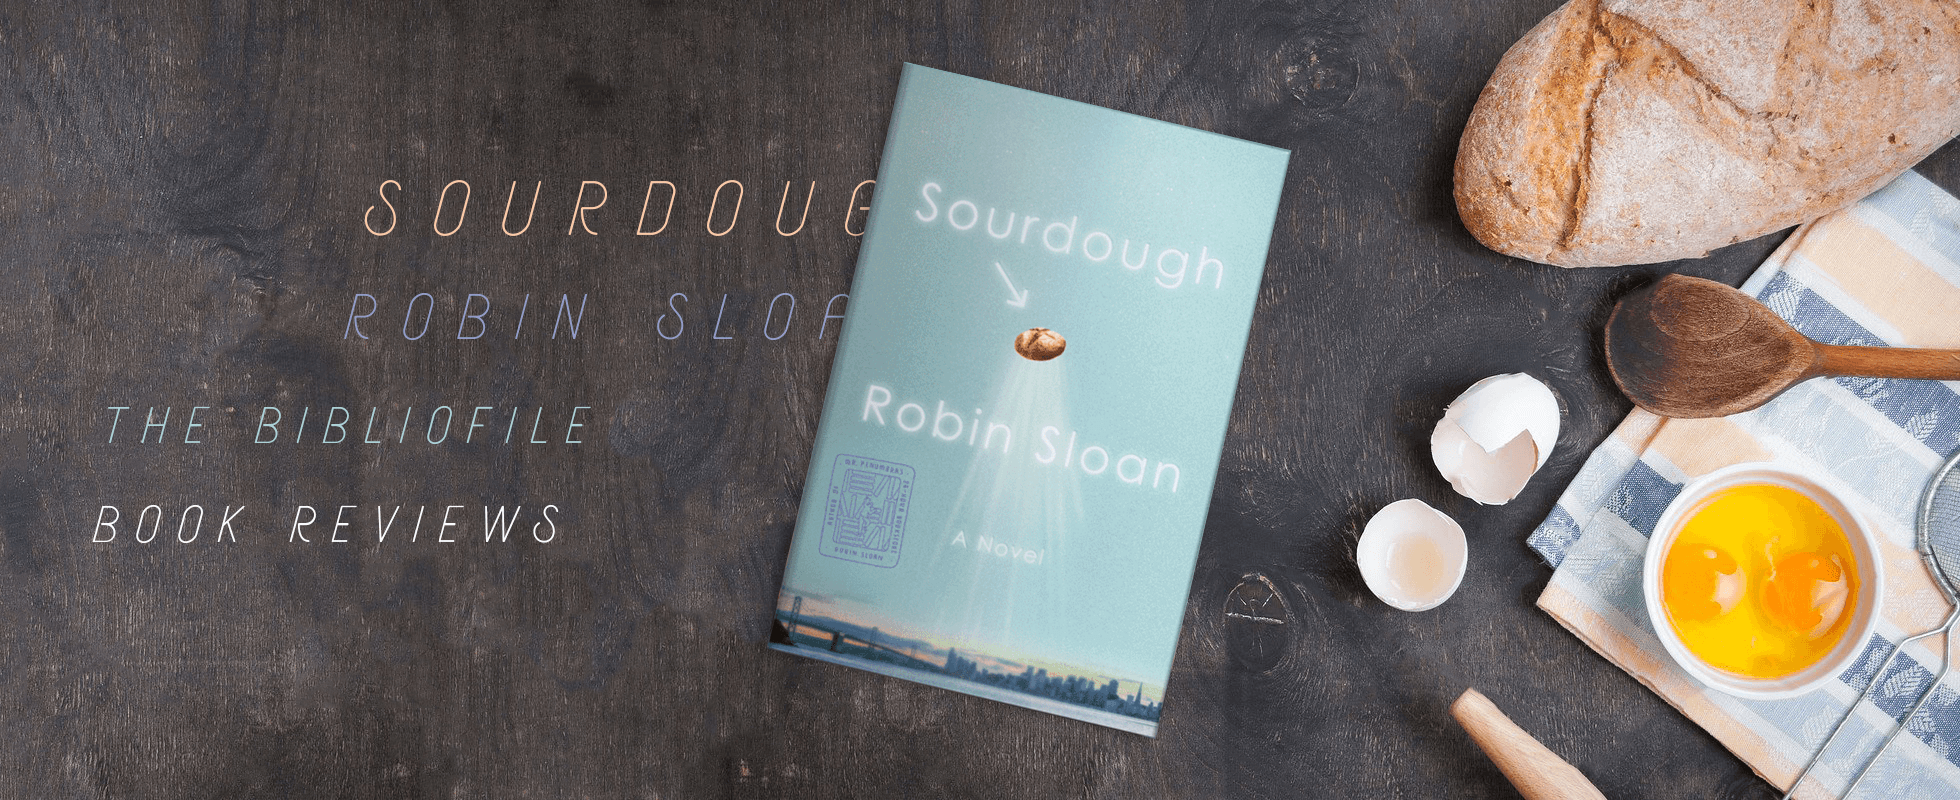 sourdough by robin sloane